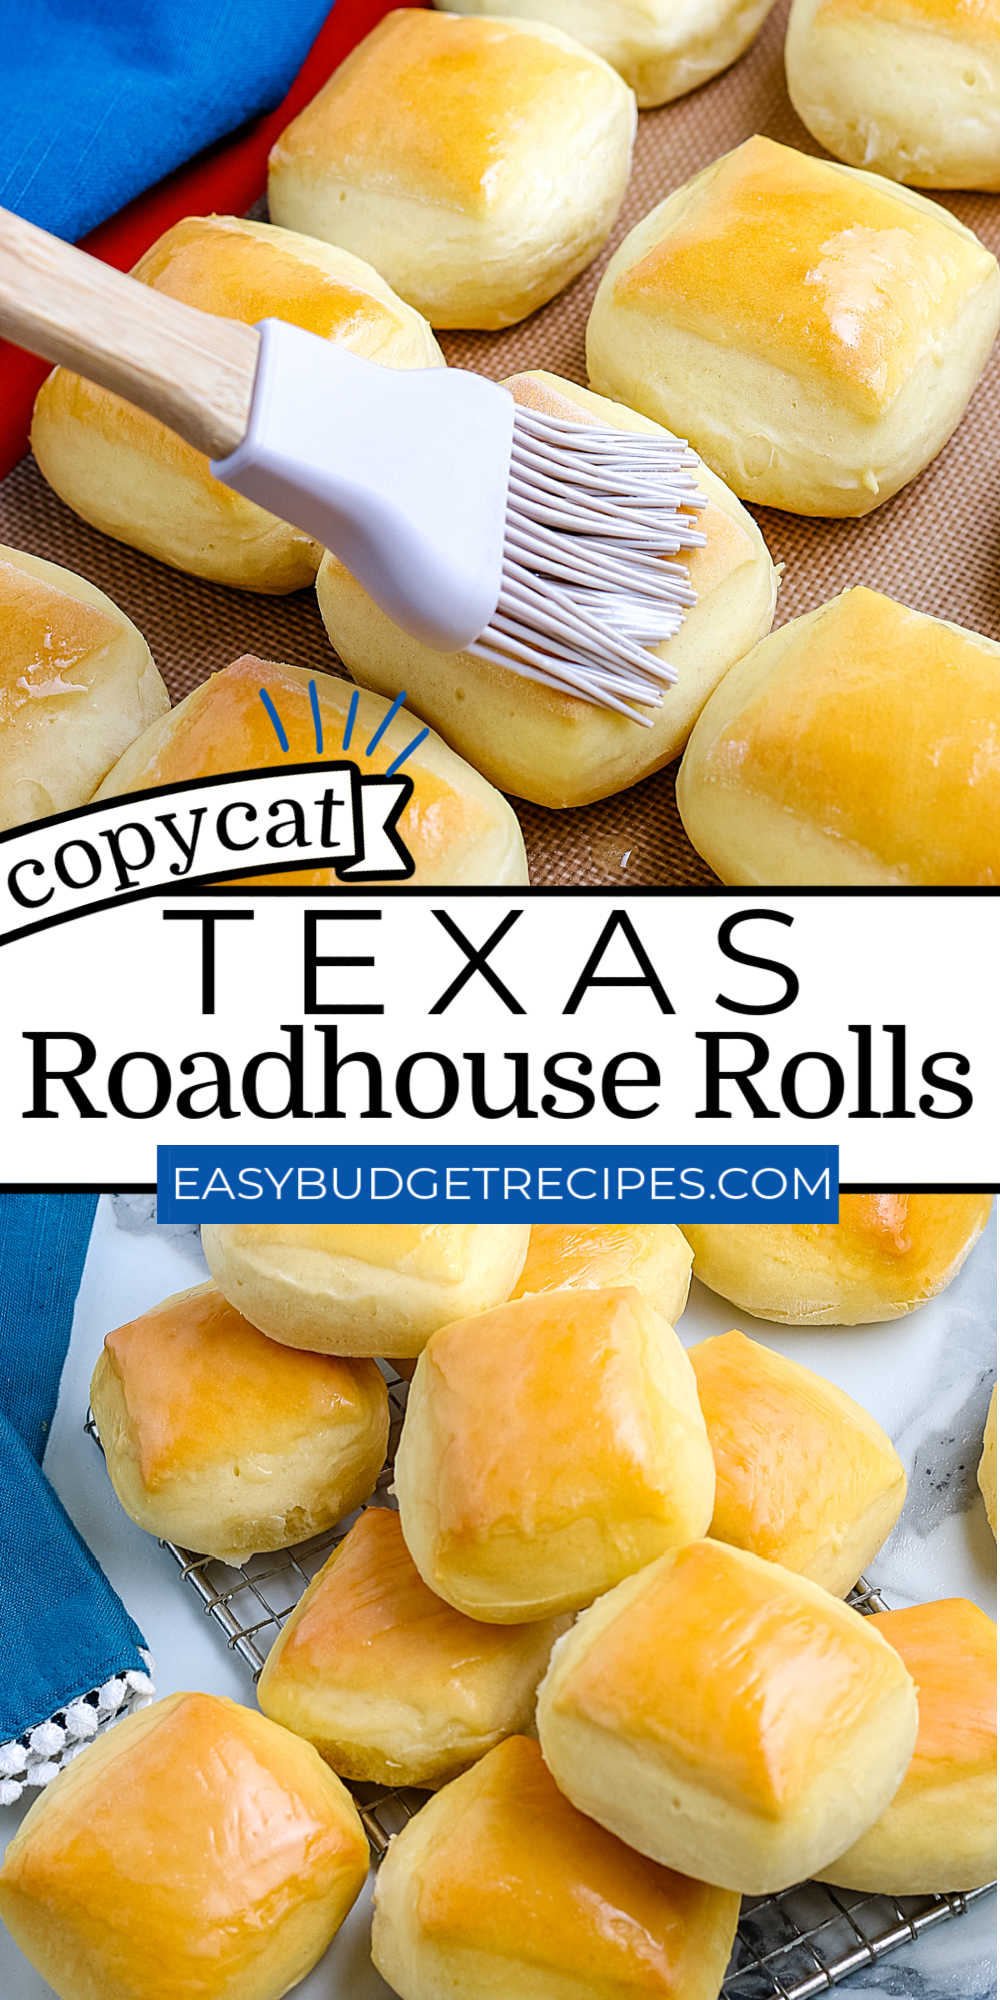 These Copycat Texas Roadhouse Rolls are fluffy and golden brown perfection. They're great for weeknight dinners or special occasions like Thanksgiving and Christmas. via @easybudgetrecipes